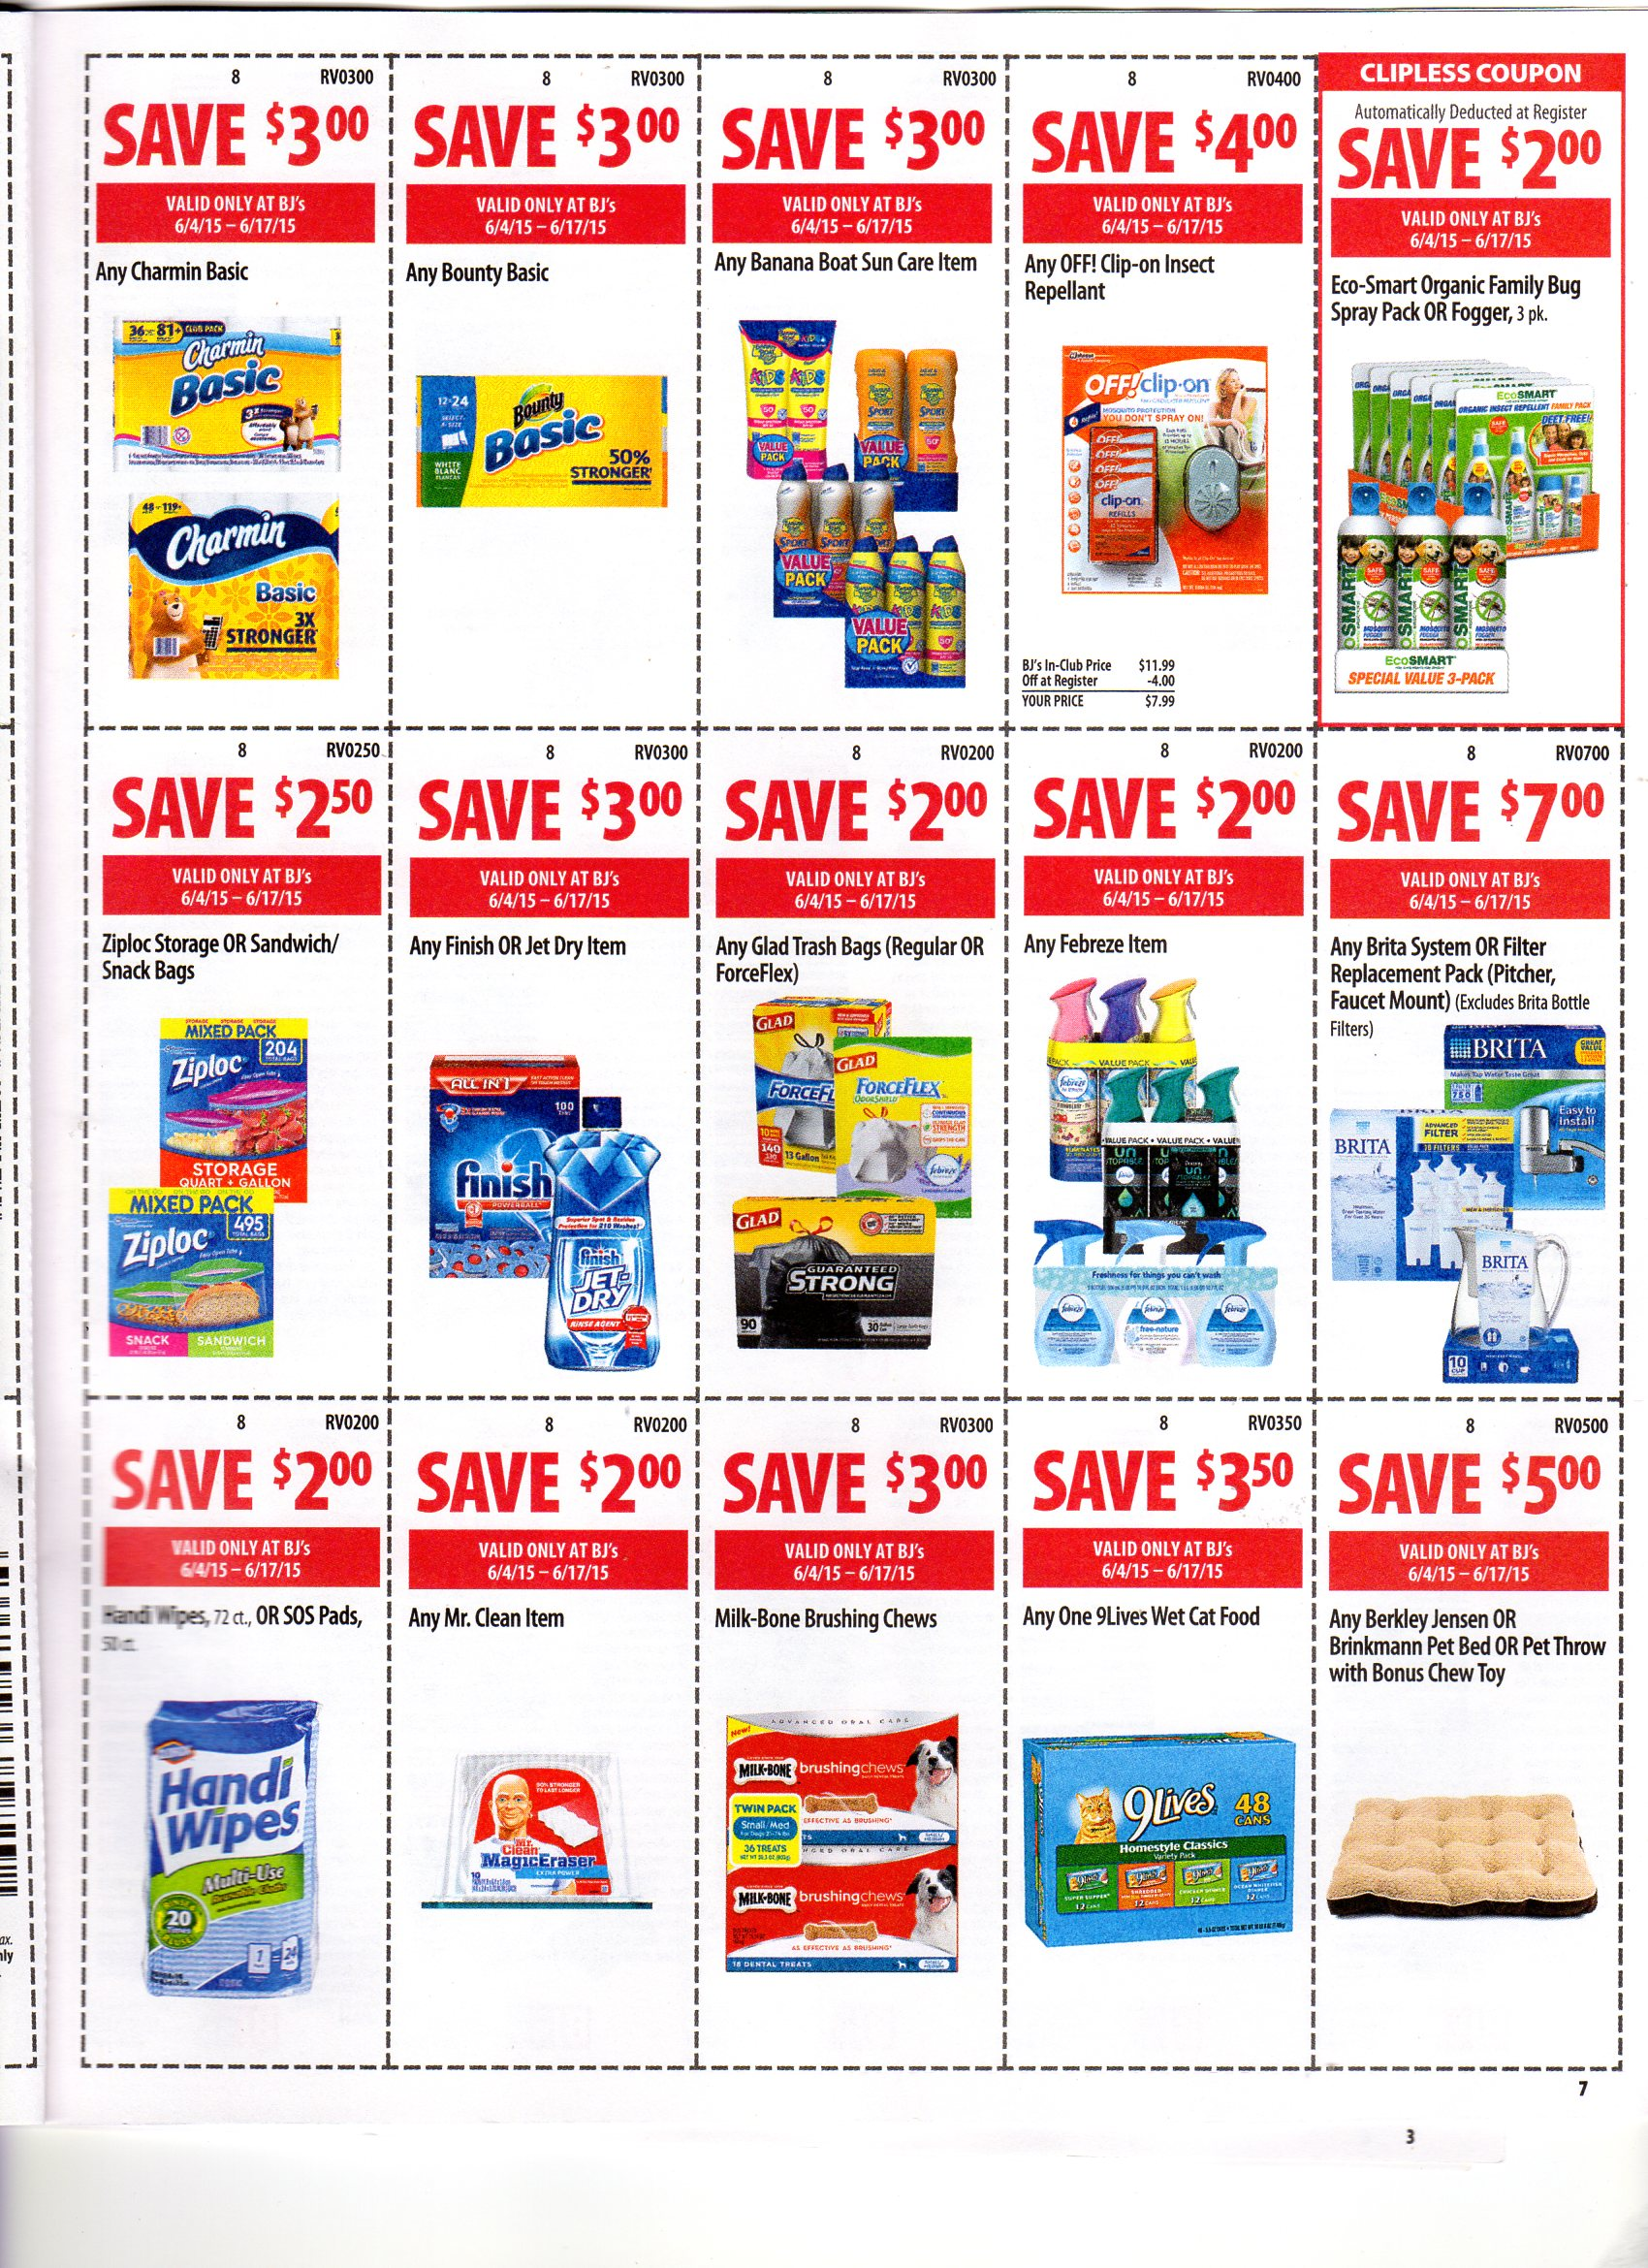 bj's front of store coupons for 6/4-6/17